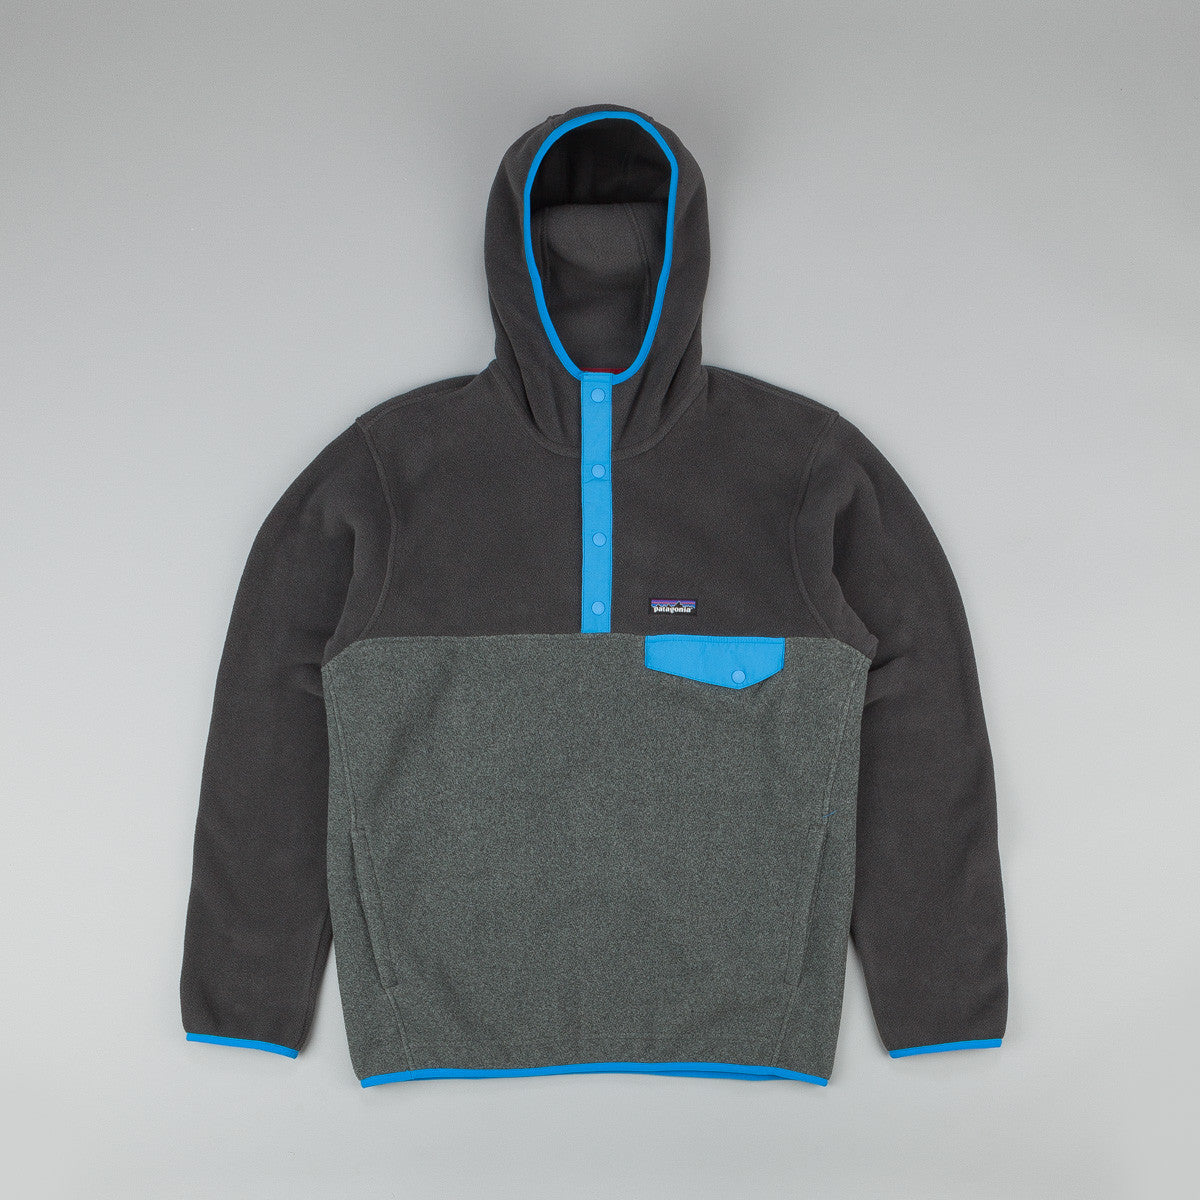 Patagonia Synchilla Snap-T Hooded Fleece - Nickel / Forge Grey